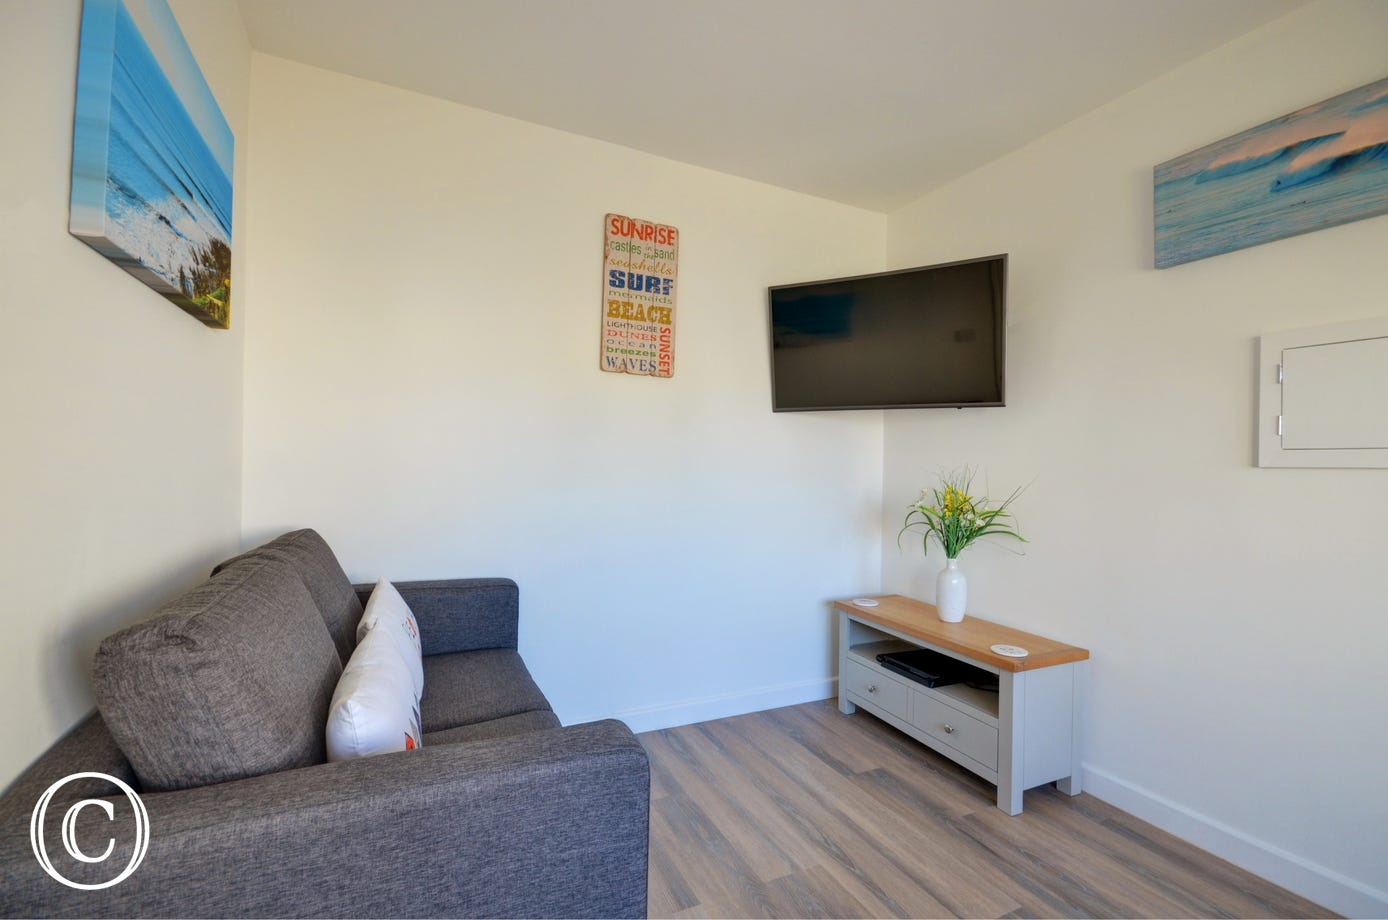 The recently added snug which will give the children space to relax and watch a good film